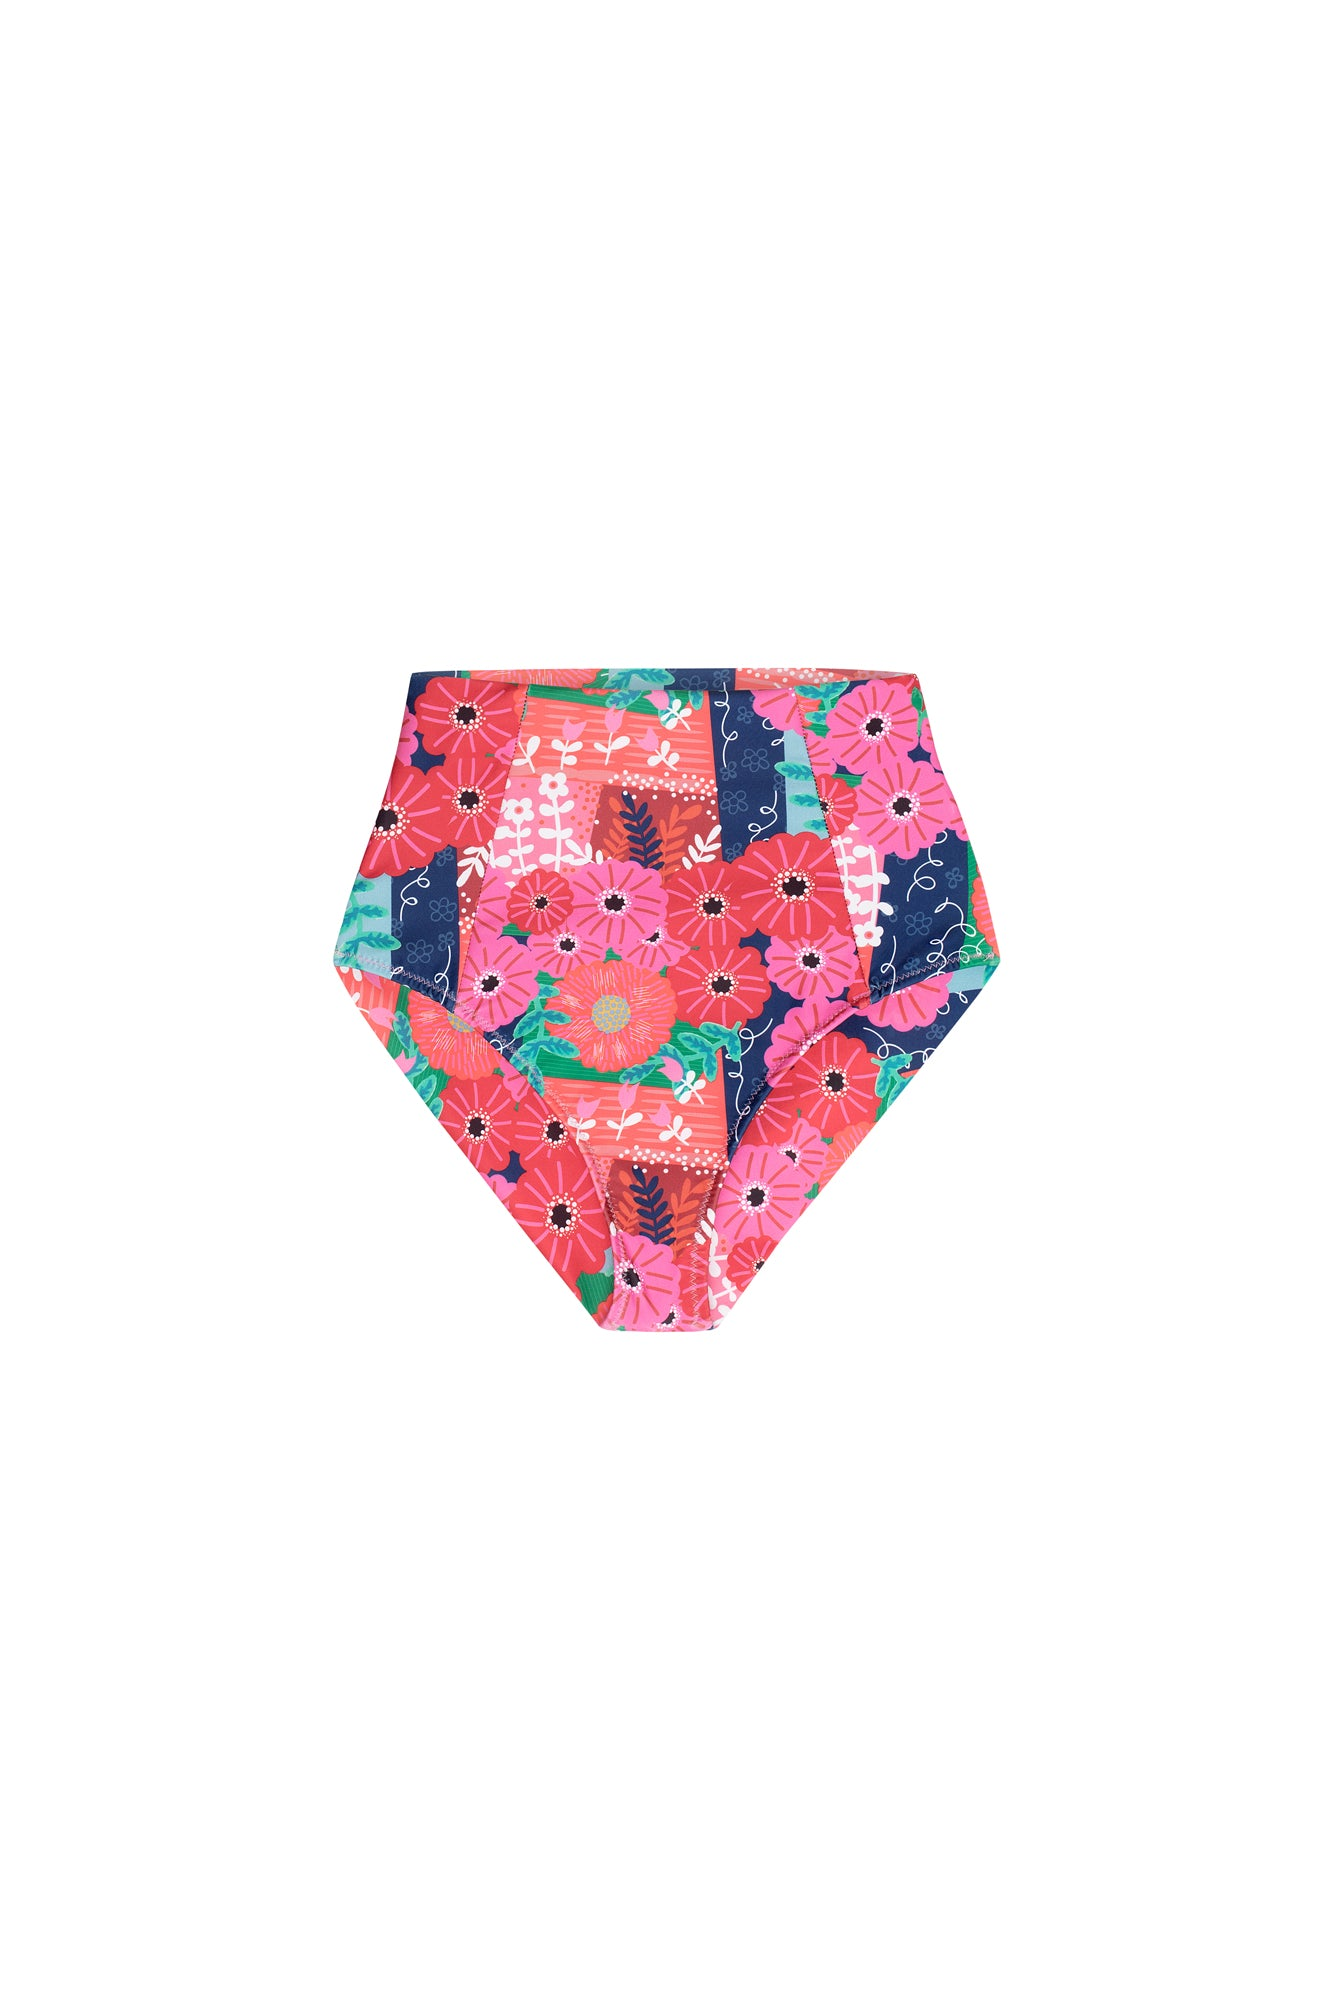 Carolina K Carmel Bikini Bottom in Magic Garden